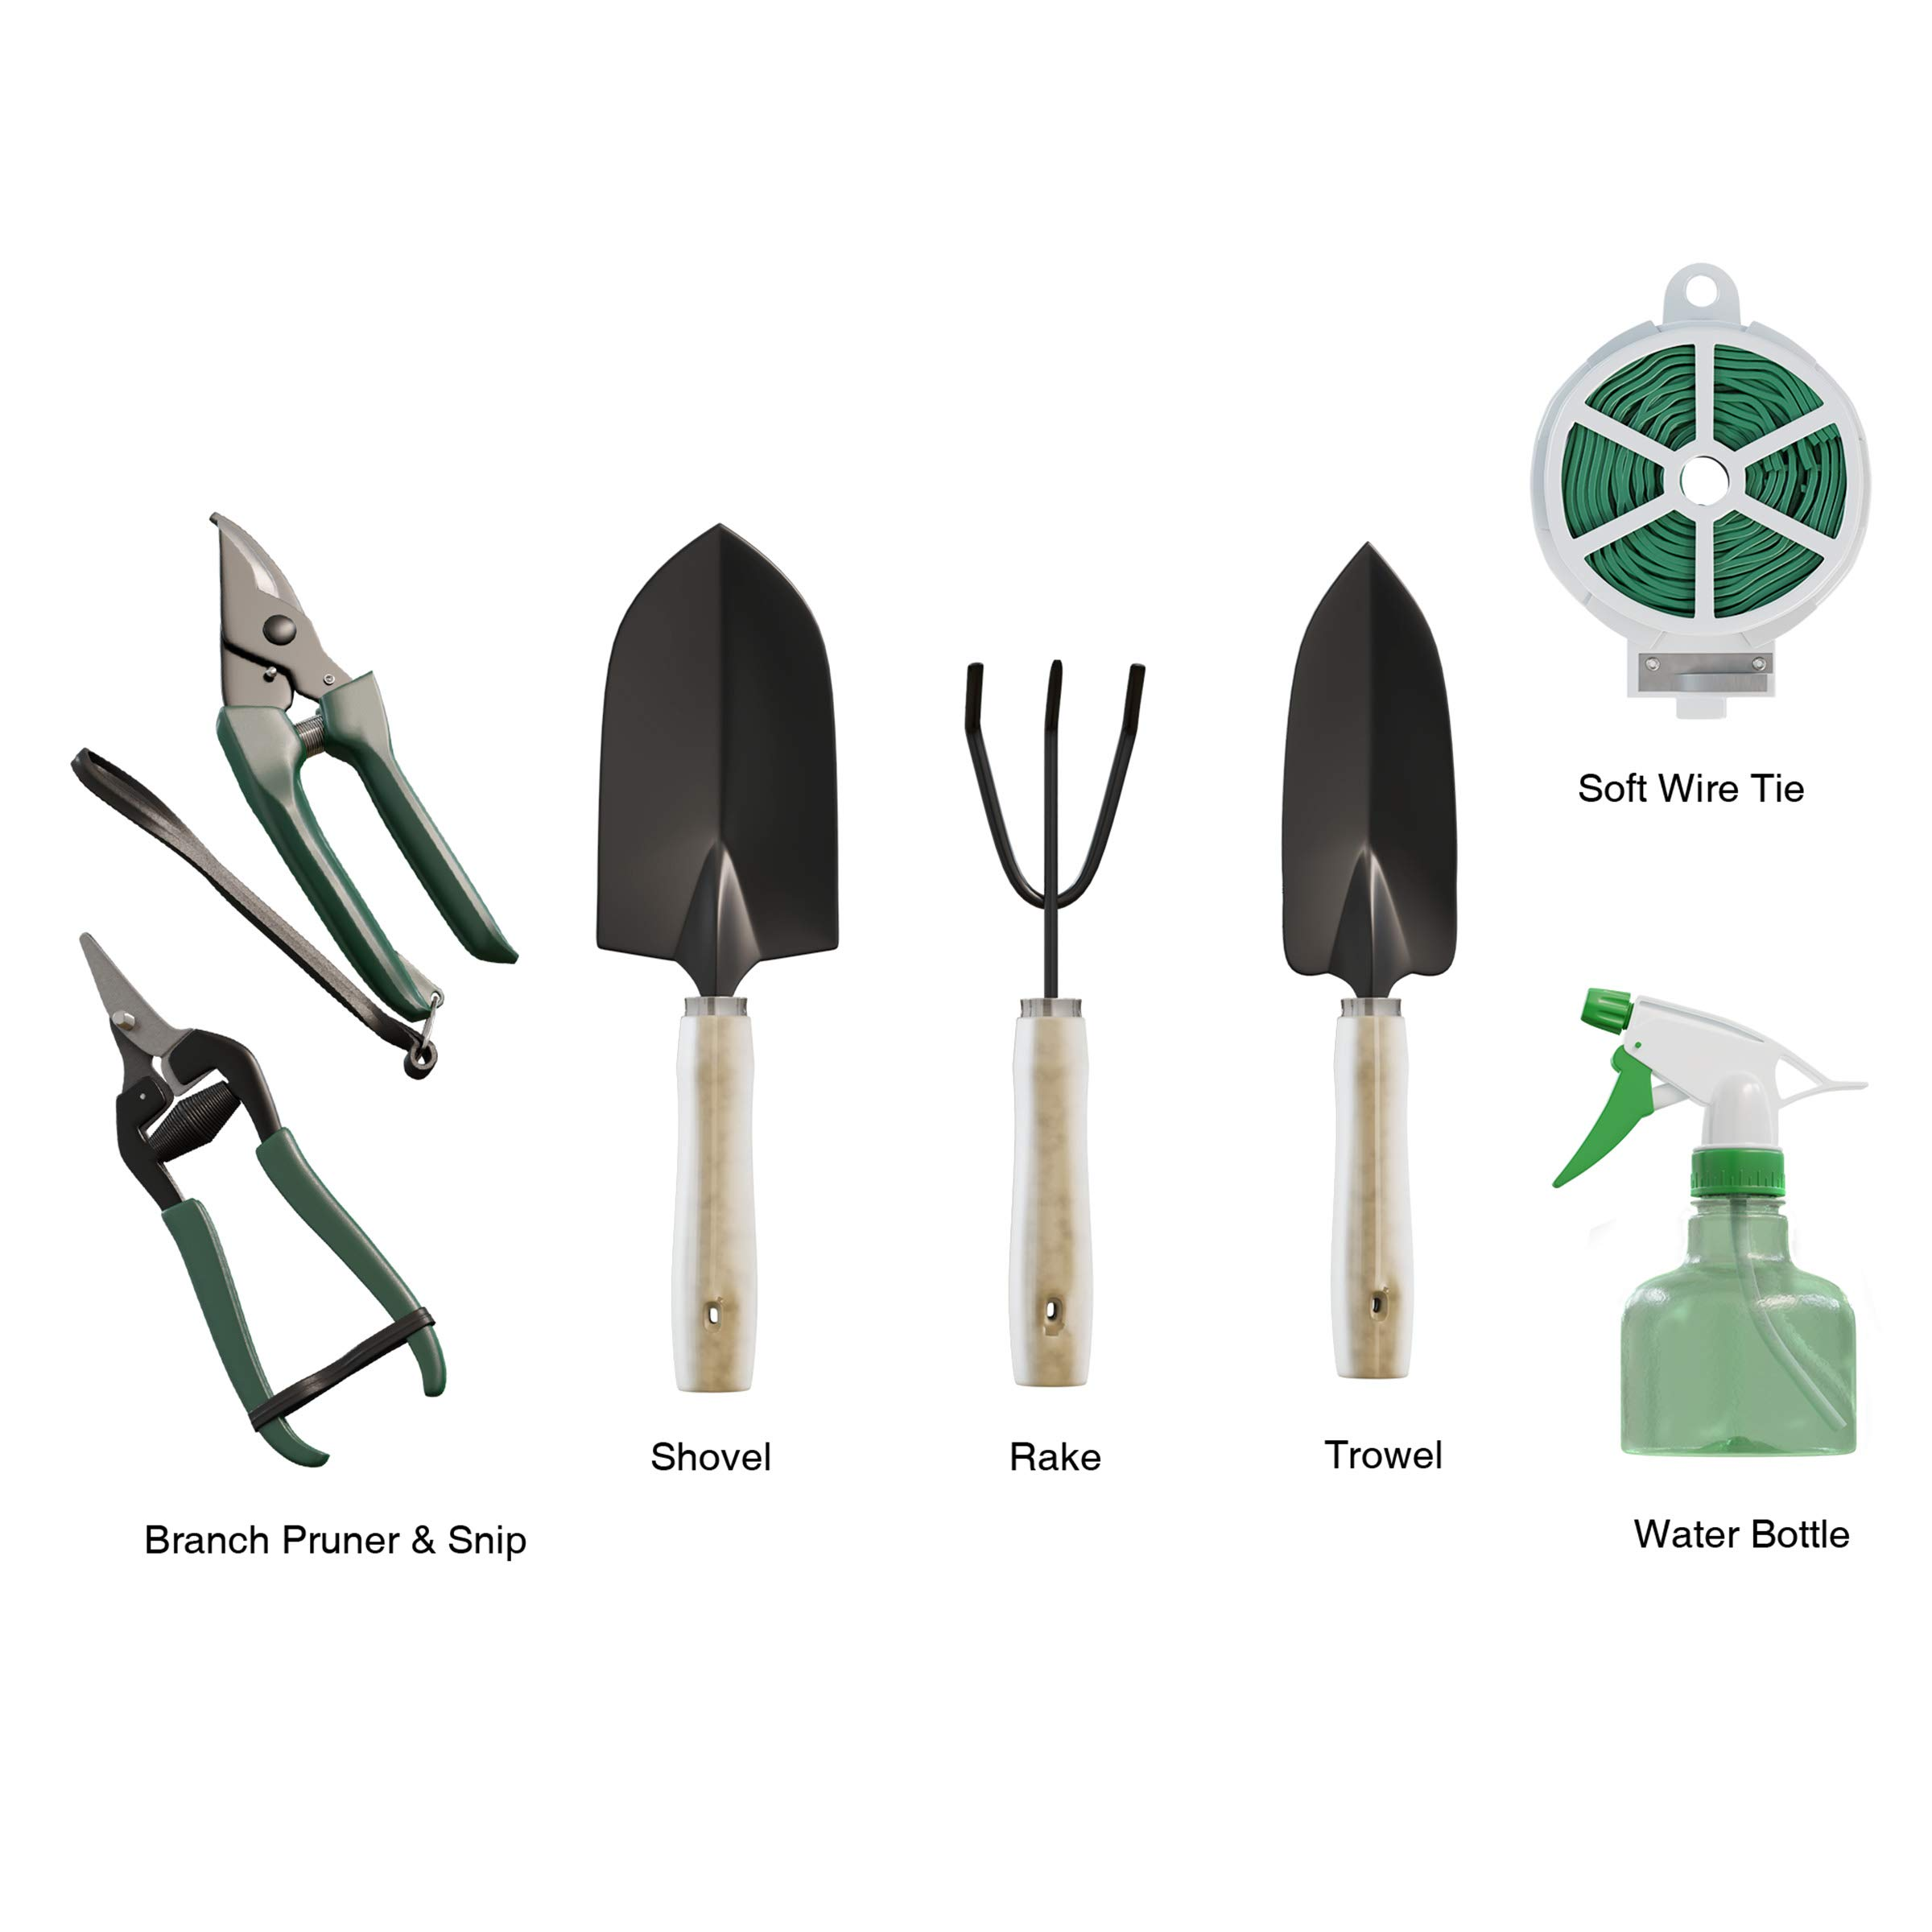 Pure Garden 8 Piece Garden Tote and Tool Set- Gardening Hand Tools and Supply Essentials Kit Includes Storage Bag, Rake, Shovel, Trowel, More by Pure Garden (Image #5)